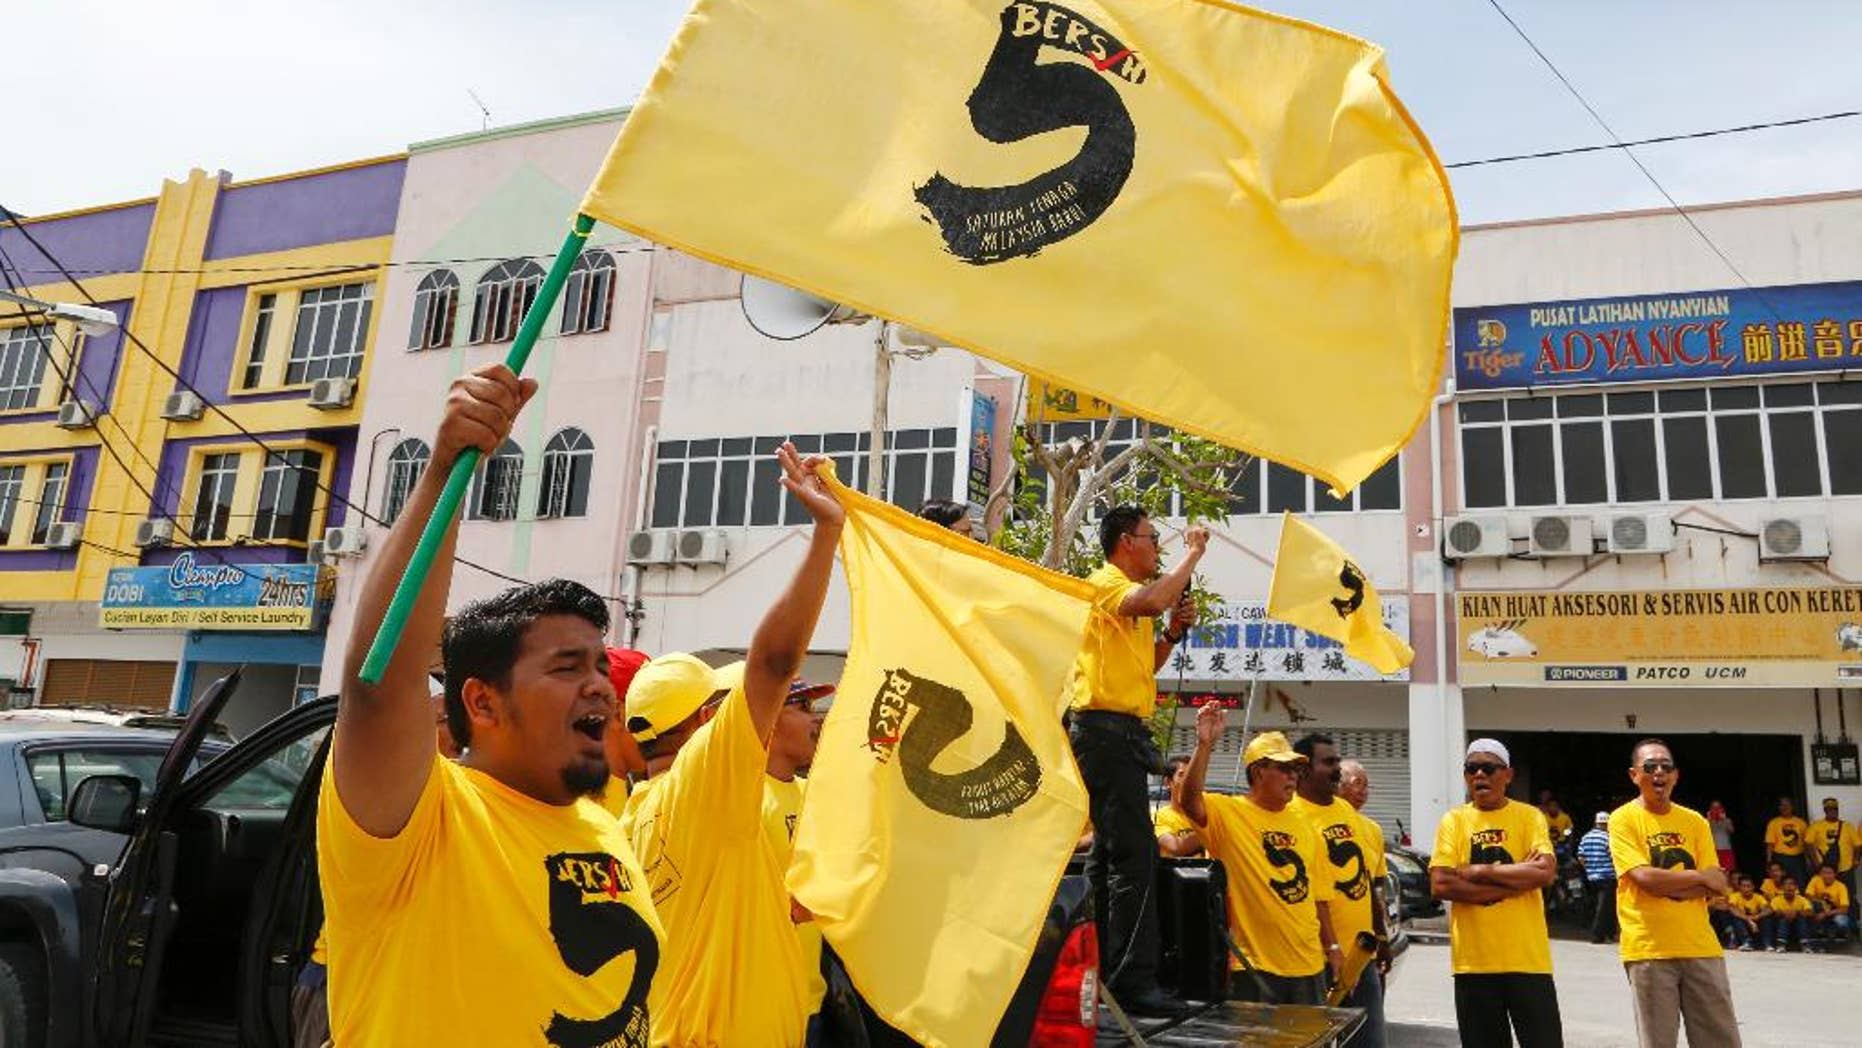 """In this Oct. 15, 2016 photo, pro-democracy activists wave """"Bersih 5"""" flags in Sekinchan, Malaysia. Malaysian pro-democracy activists have vowed to go ahead with a massive rally on Saturday, Nov. 19 to demand Prime Minister Najib Razak's resignation over a financial scandal despite a police ban and fears of clashes with a pro-government group. Chairwoman Maria Chin of Bersih says Saturday's rally in downtown Kuala Lumpur will protest poor governance and a lack of accountability that have led to """"grand corruption"""" in the 1MDB fund. (AP Photo/Lim Huey Teng)"""